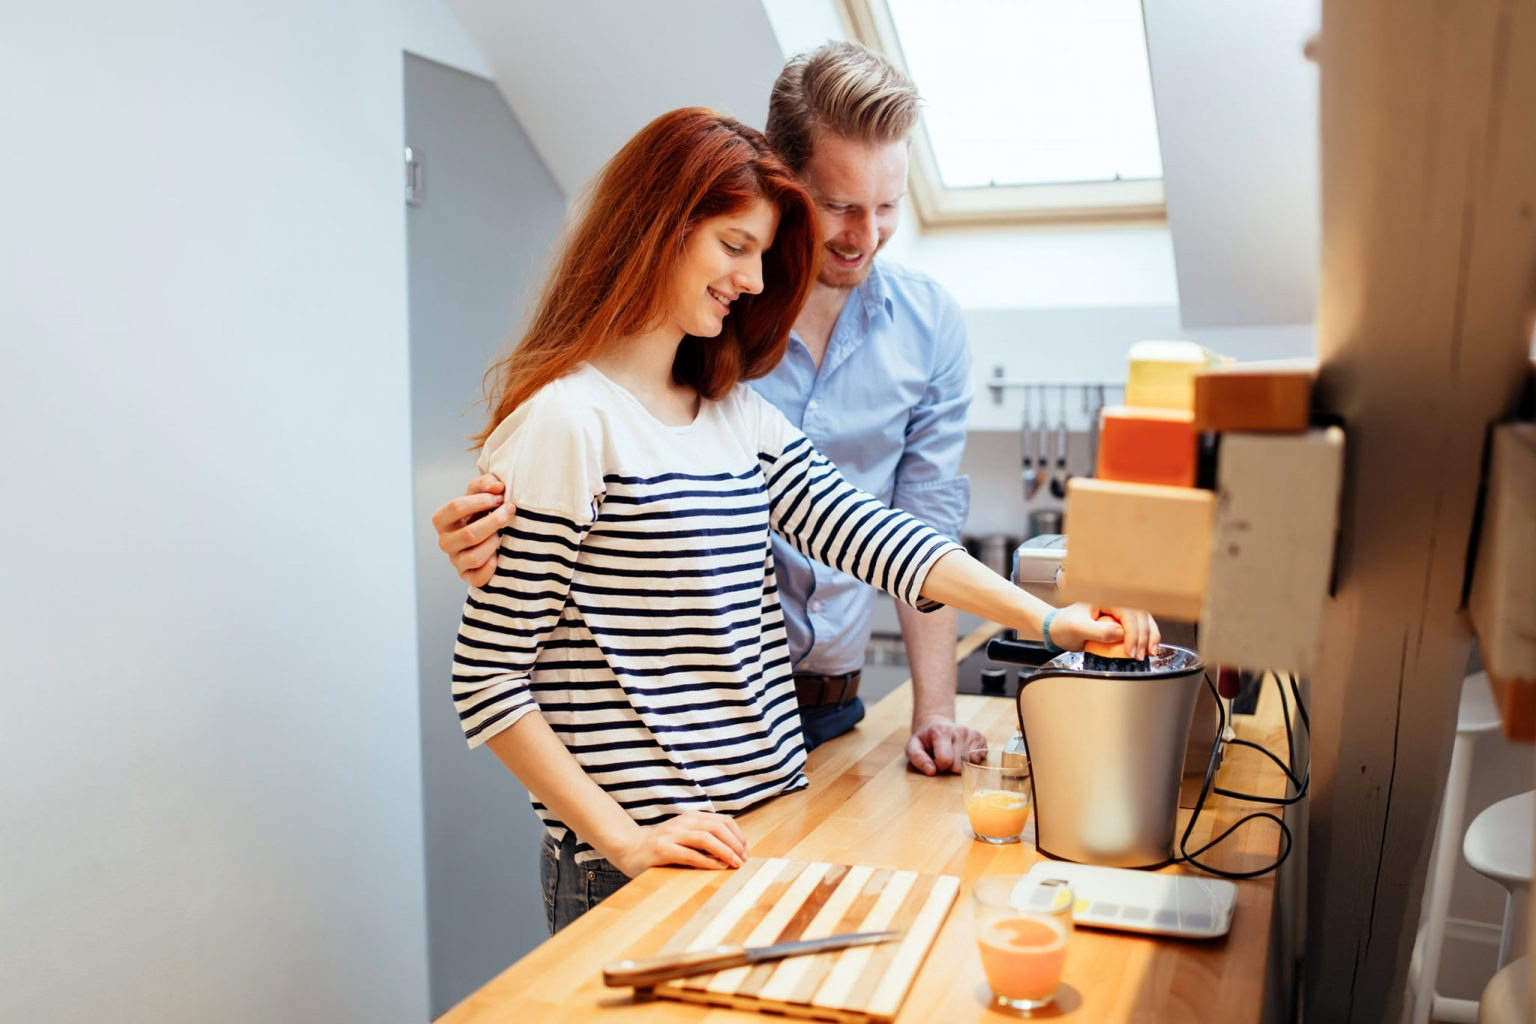 husband-helping-wife-in-kitchen-RZMF5NW re